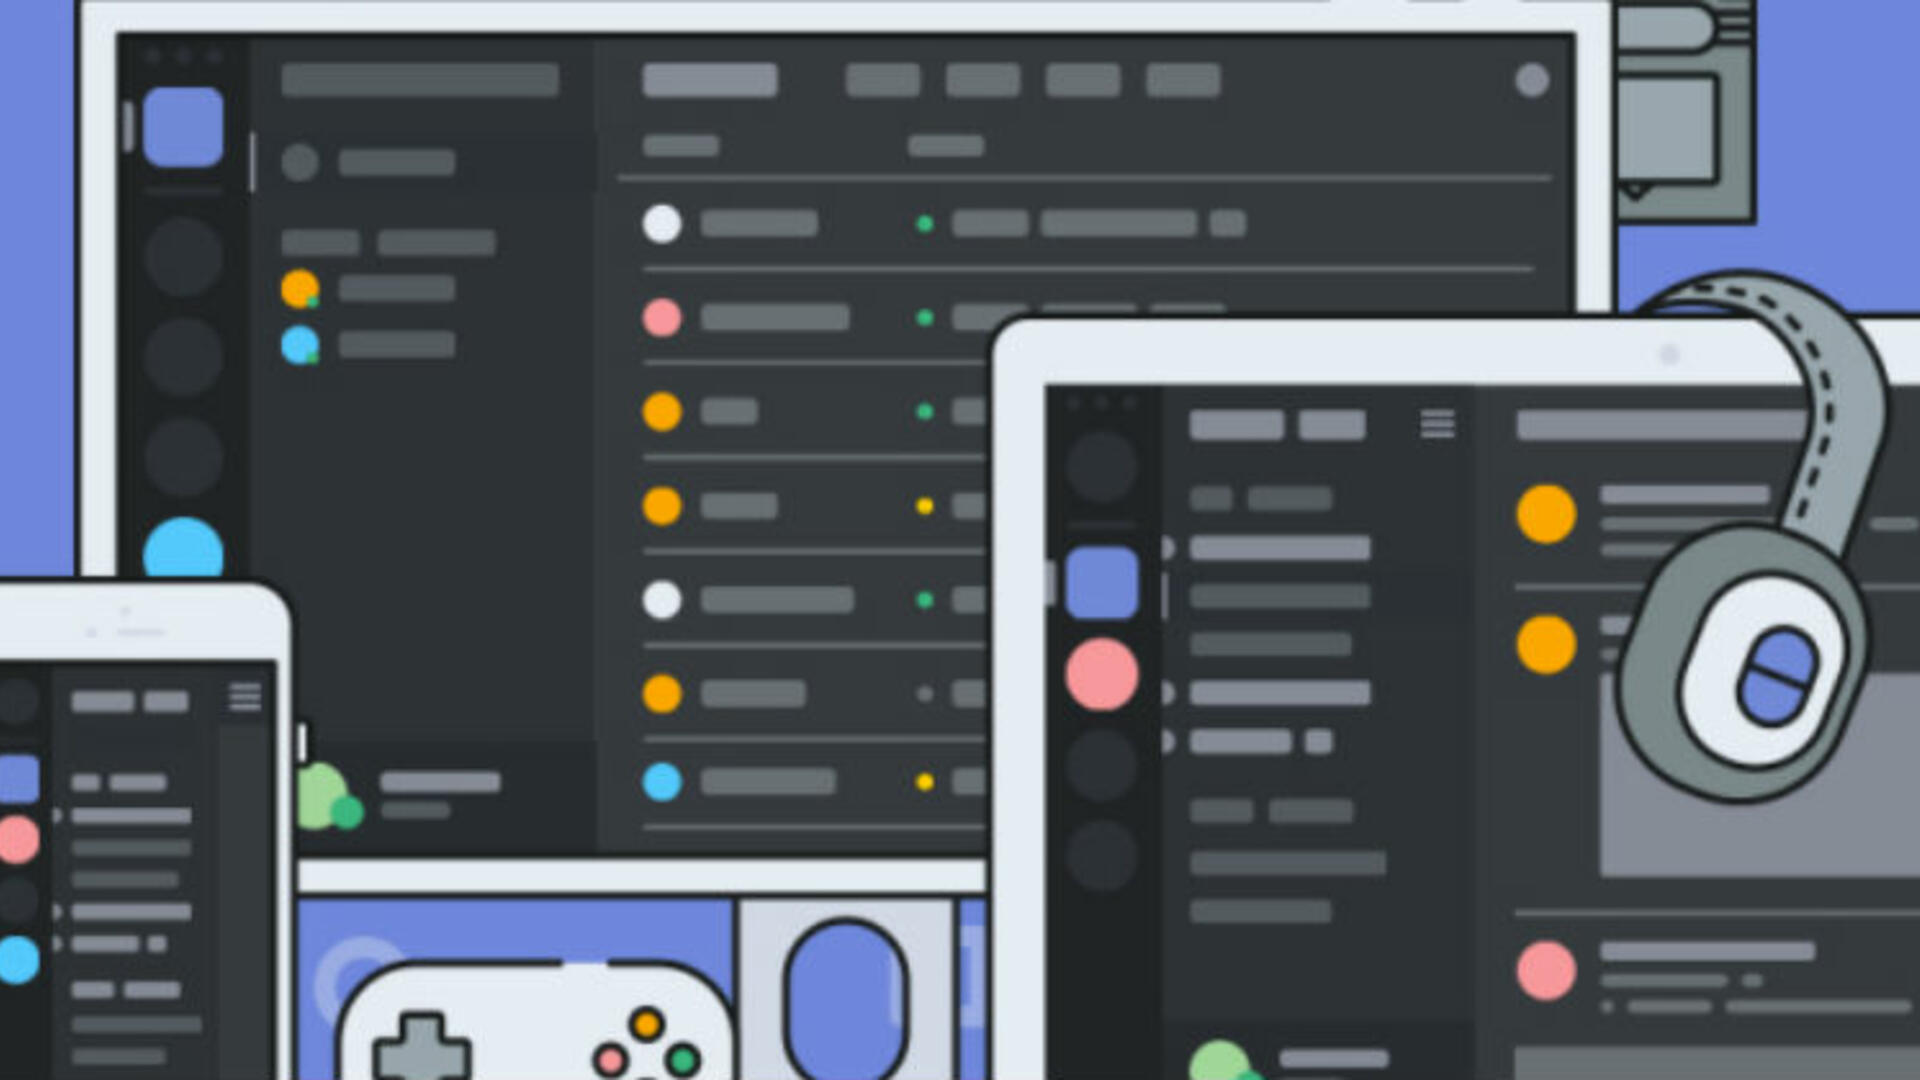 Discord Announces a New Feature That Will Let You Join a Friend's Game Easily